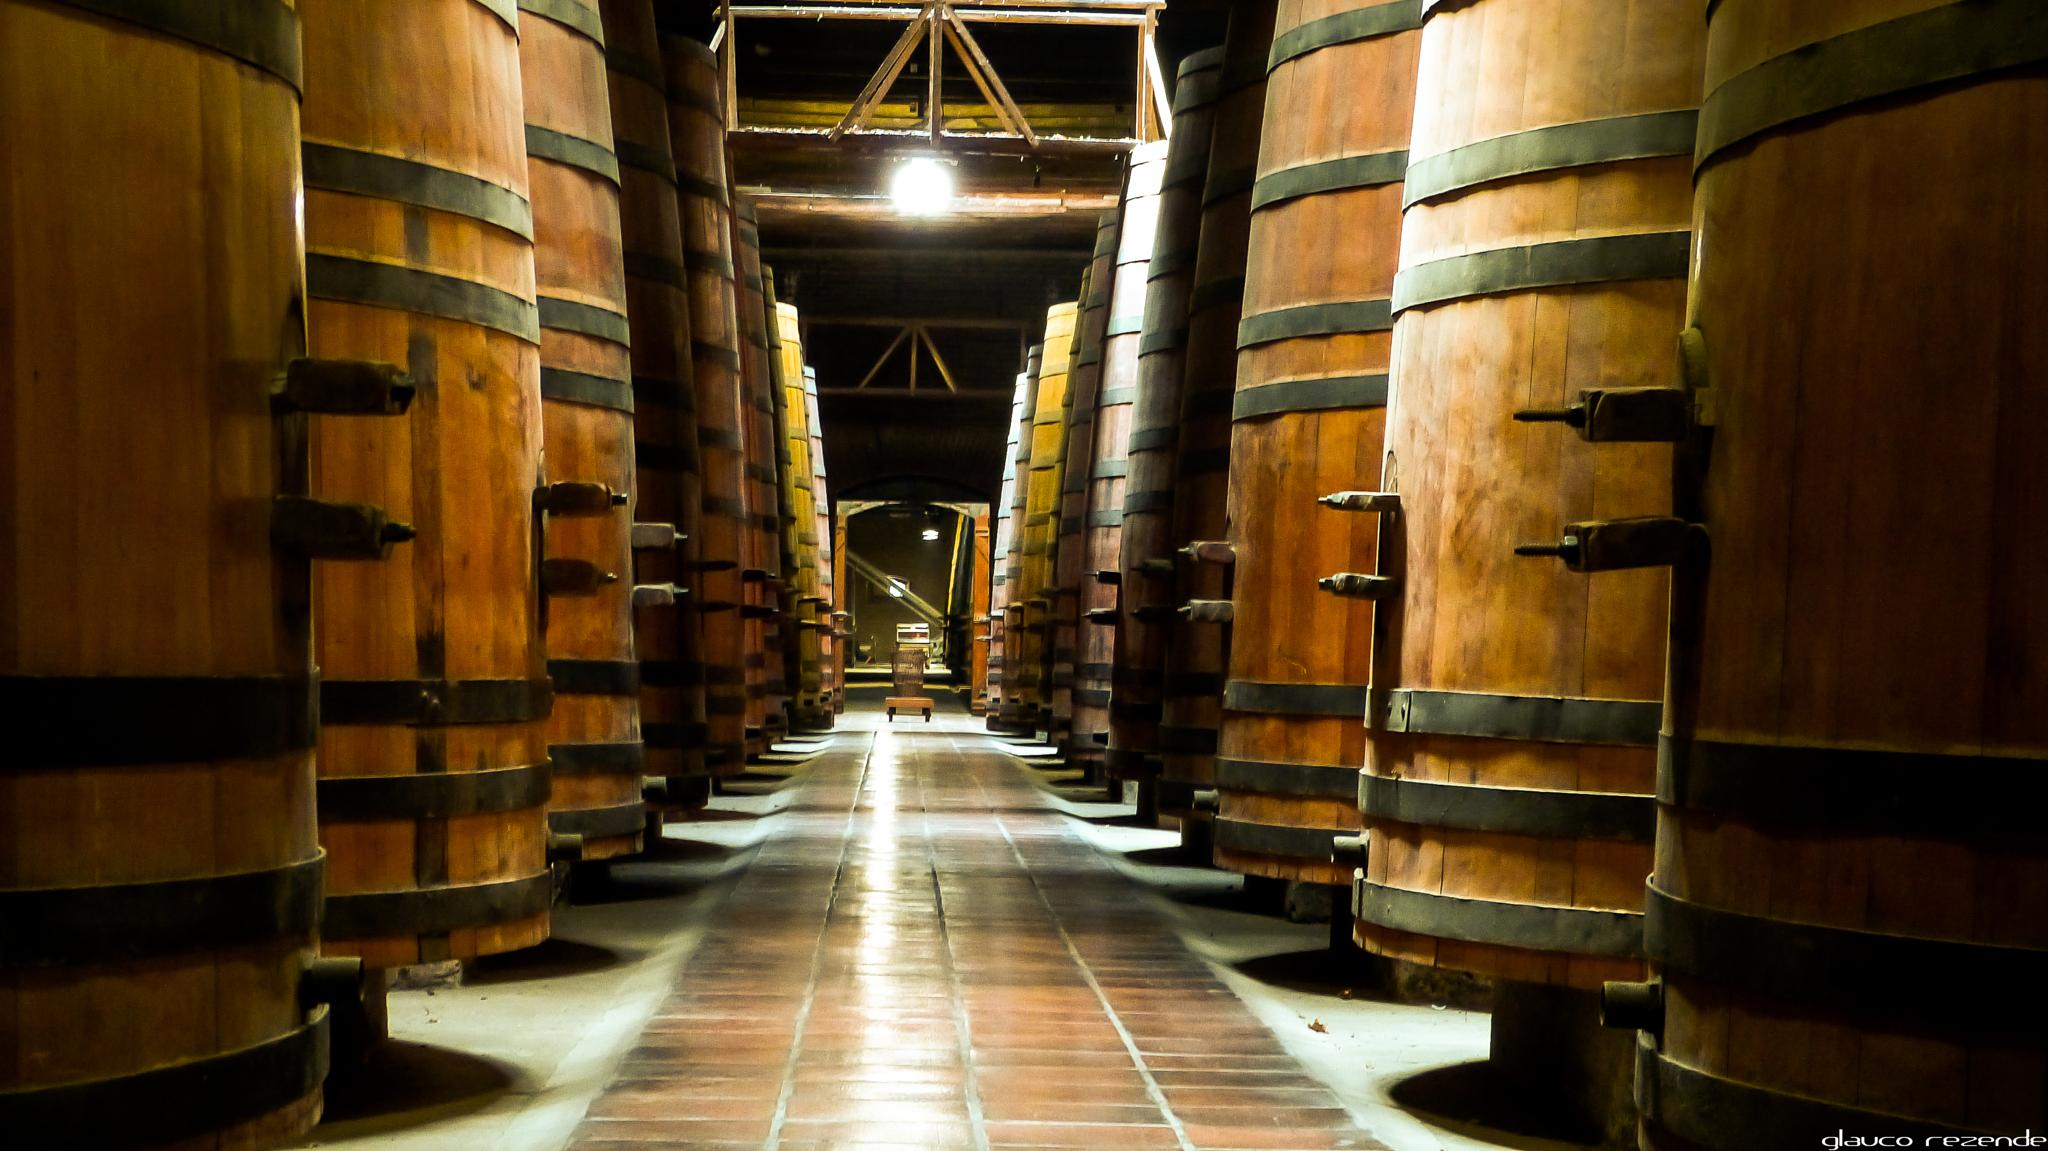 Would you like some wine? by Glauco Rezende